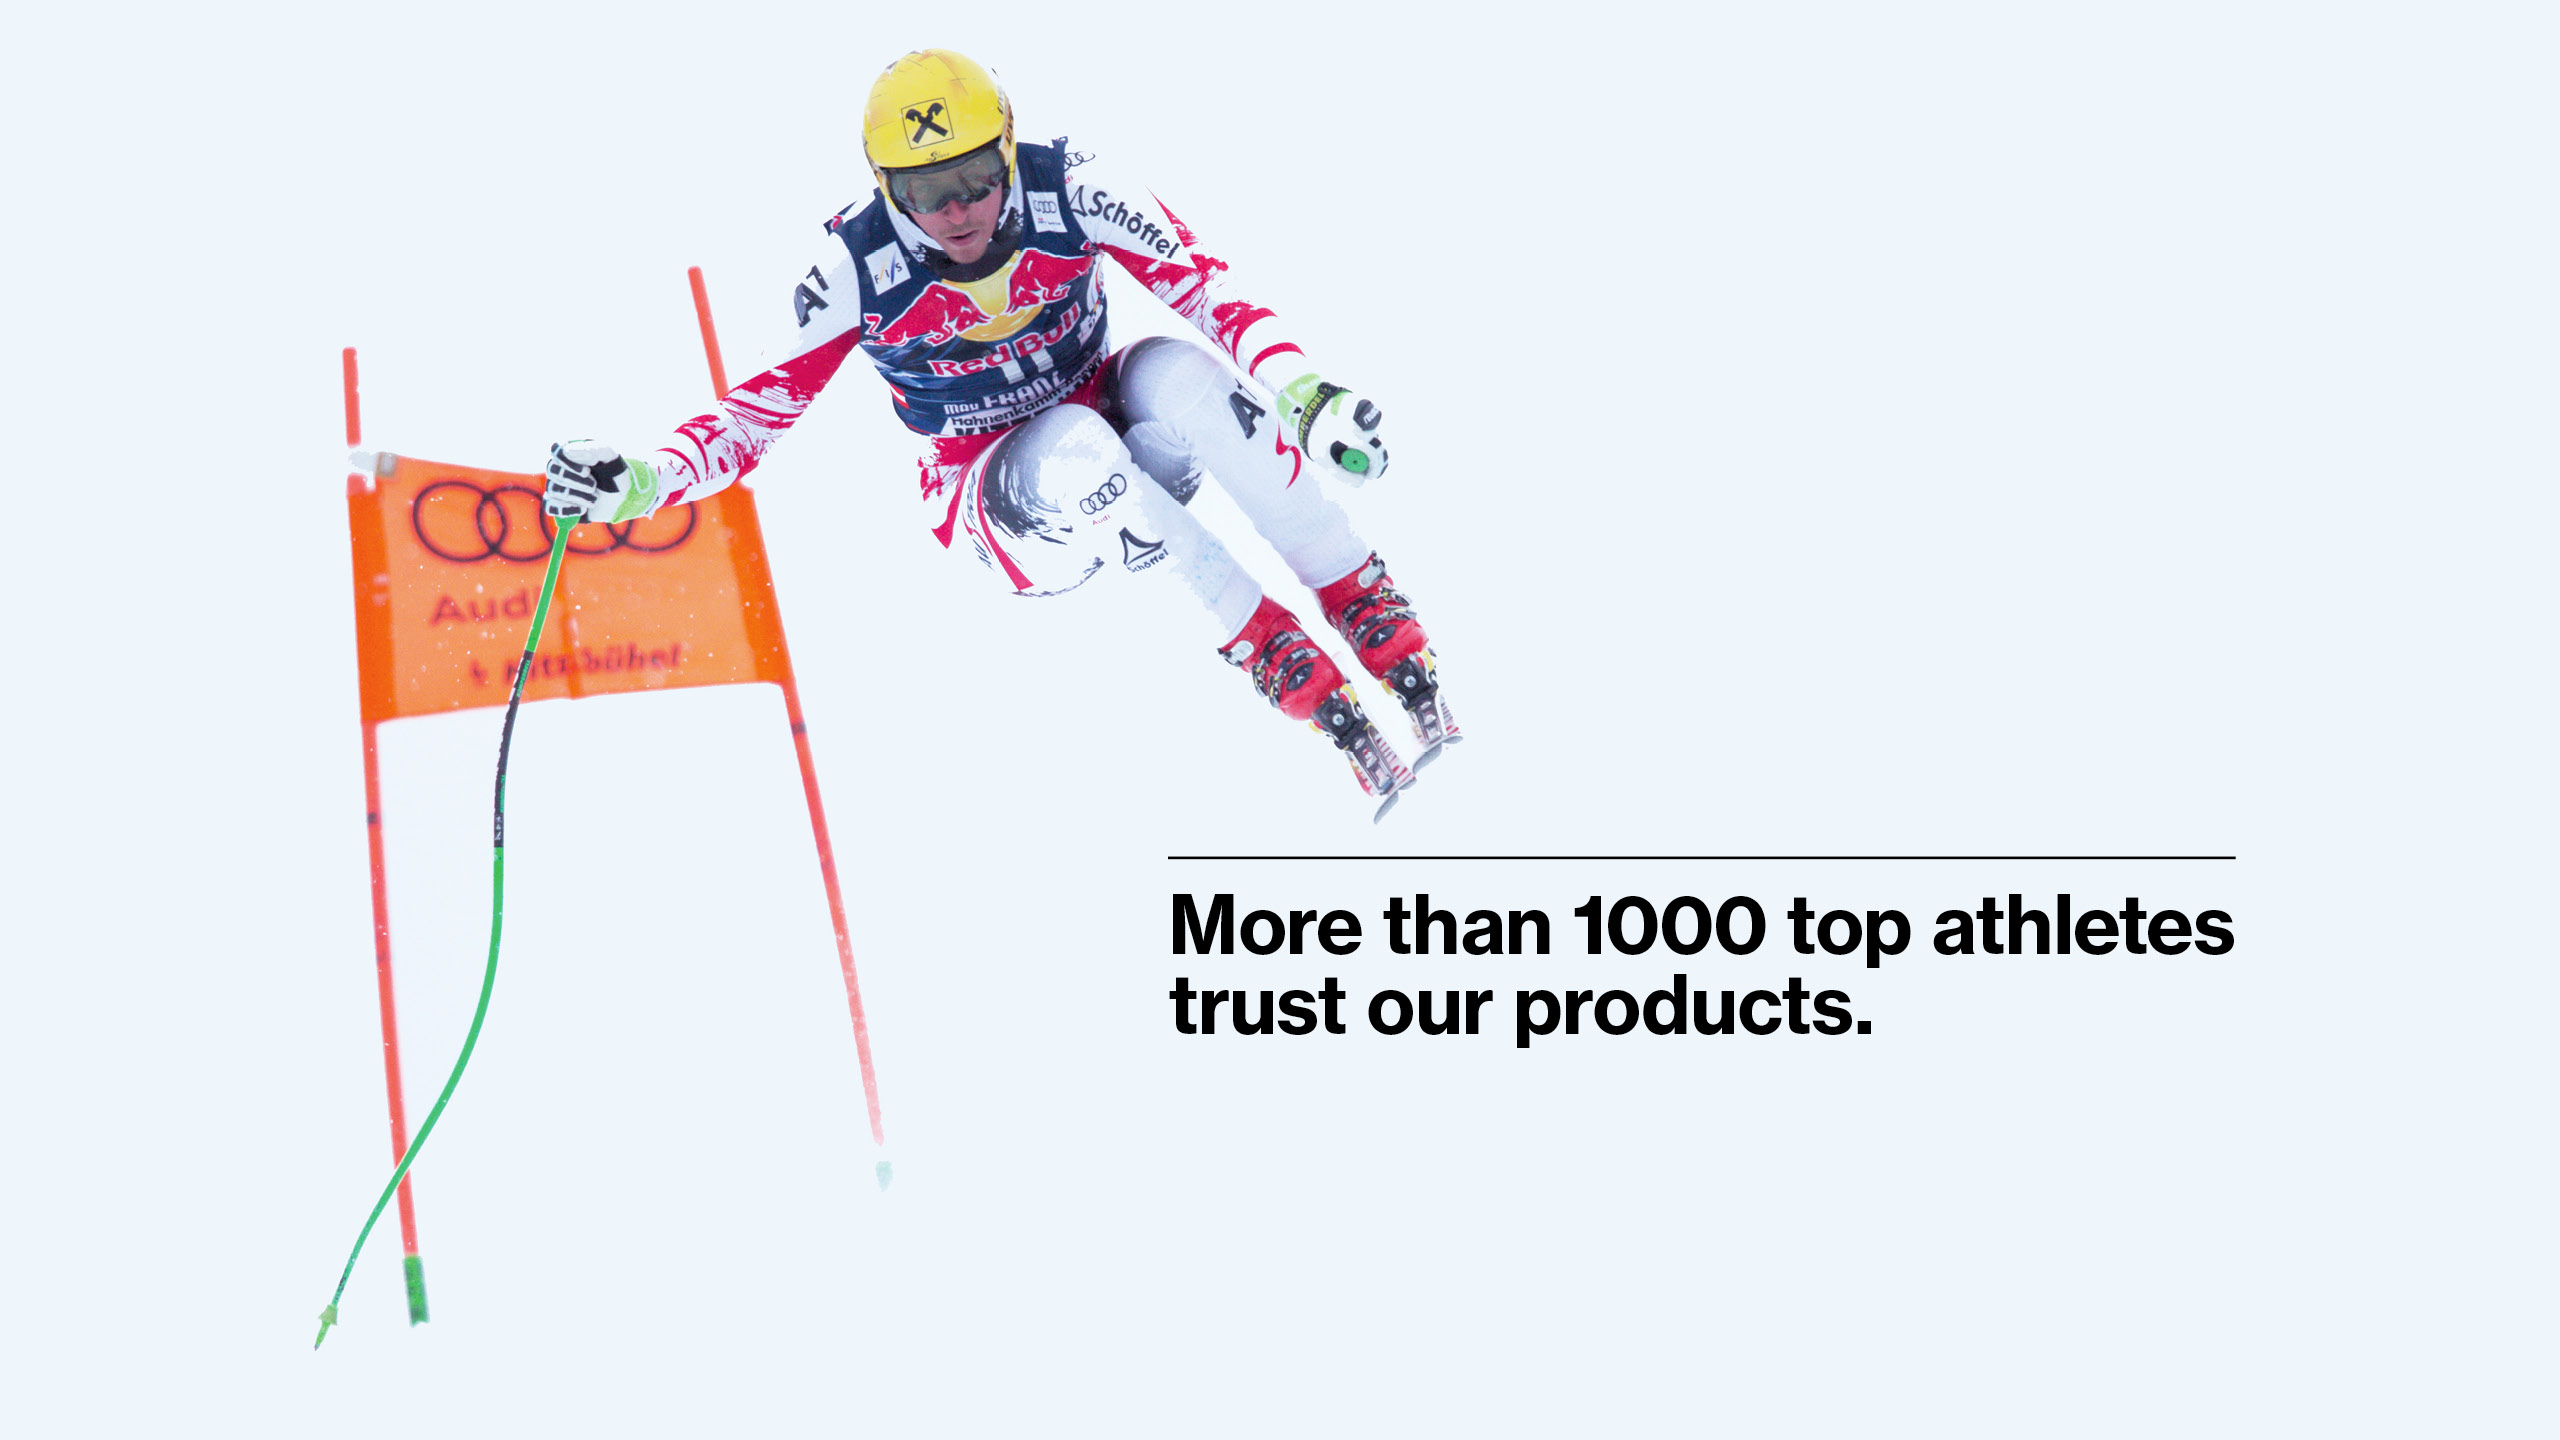 Top athletes trust in uvex products.